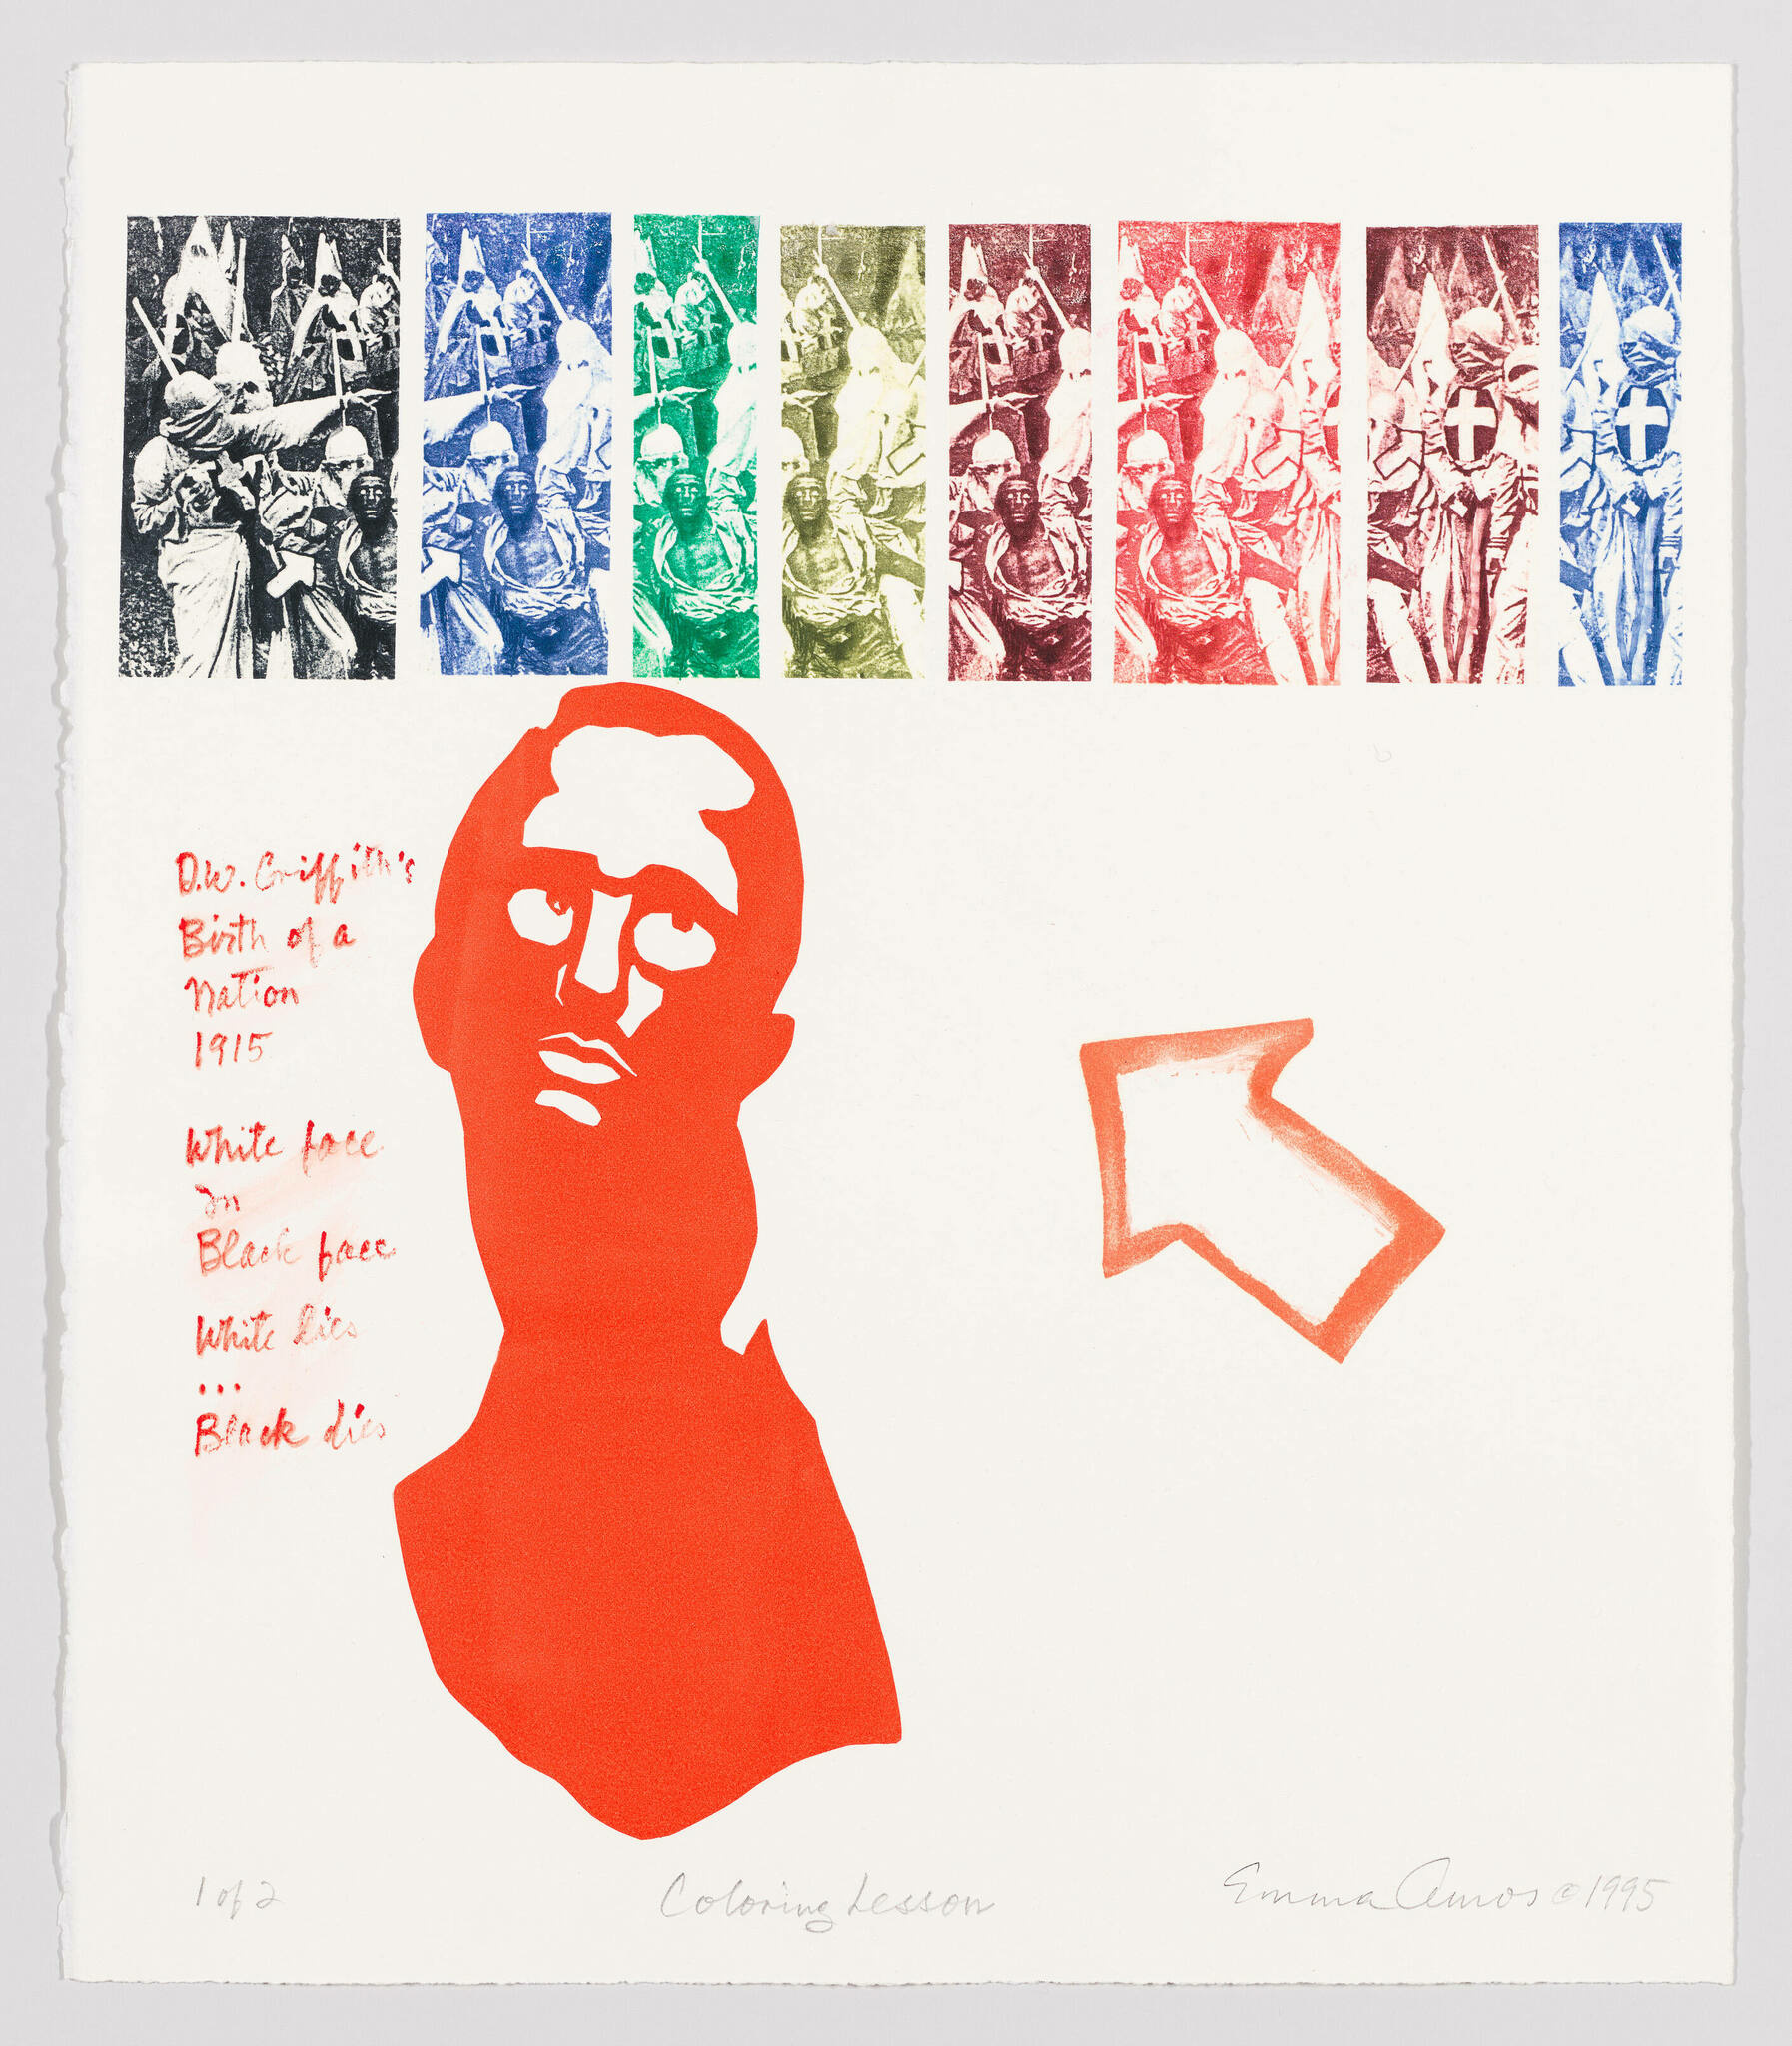 A red printed bust of a black man, flanked by text and an arrow, looking up at multicolored reproductions of his own lynching.